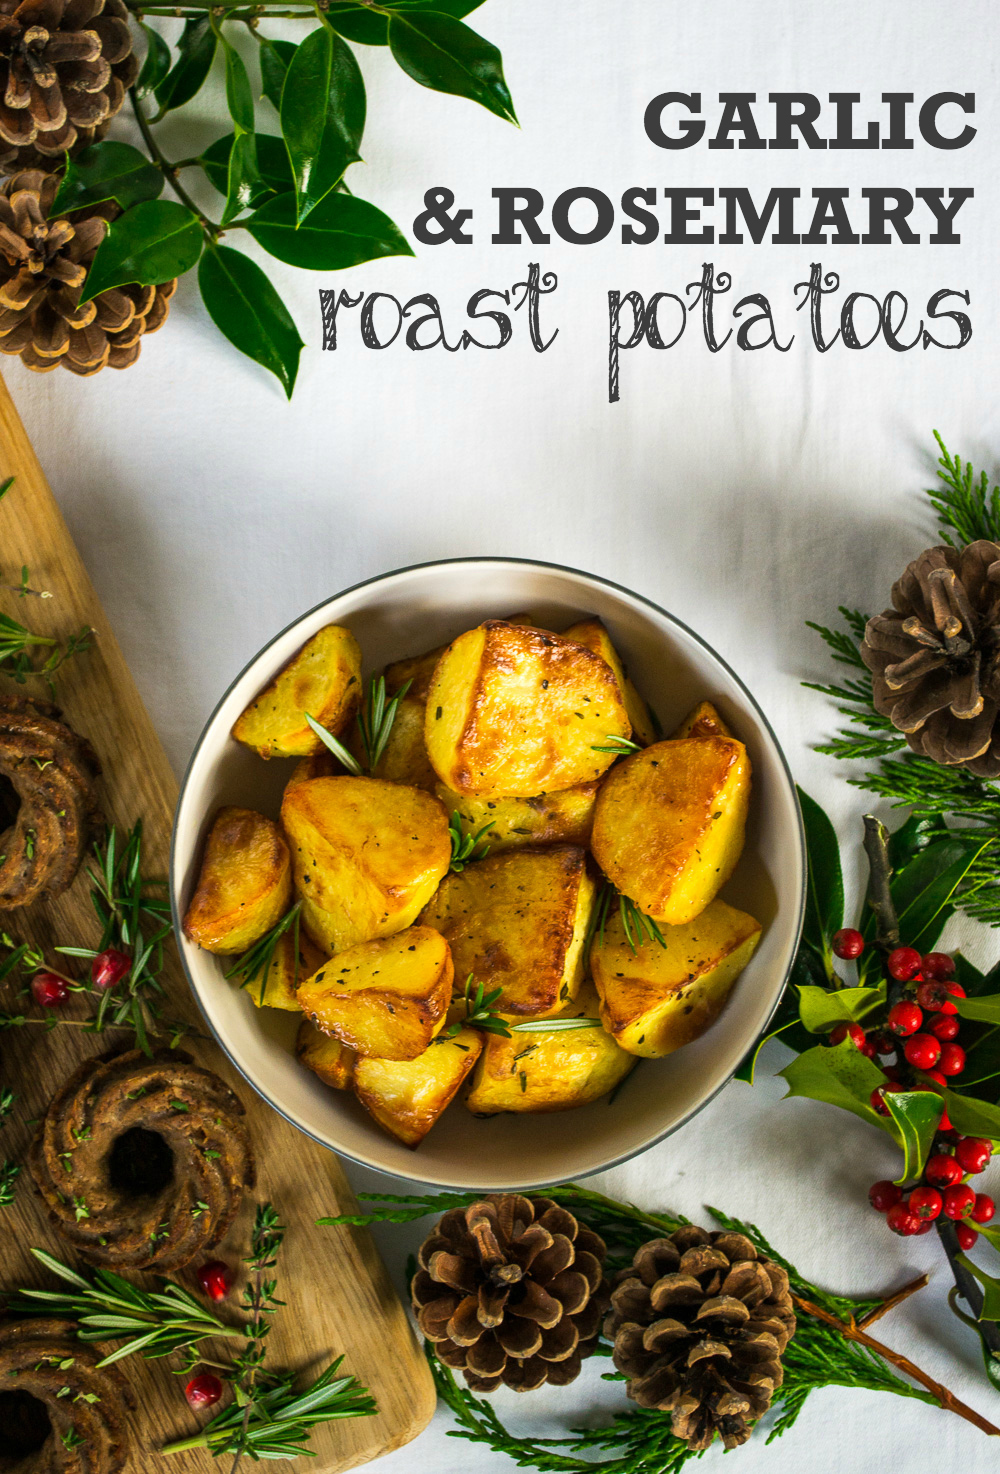 Christmas Dinner Recipe: Garlic & Rosemary Roast Potatoes